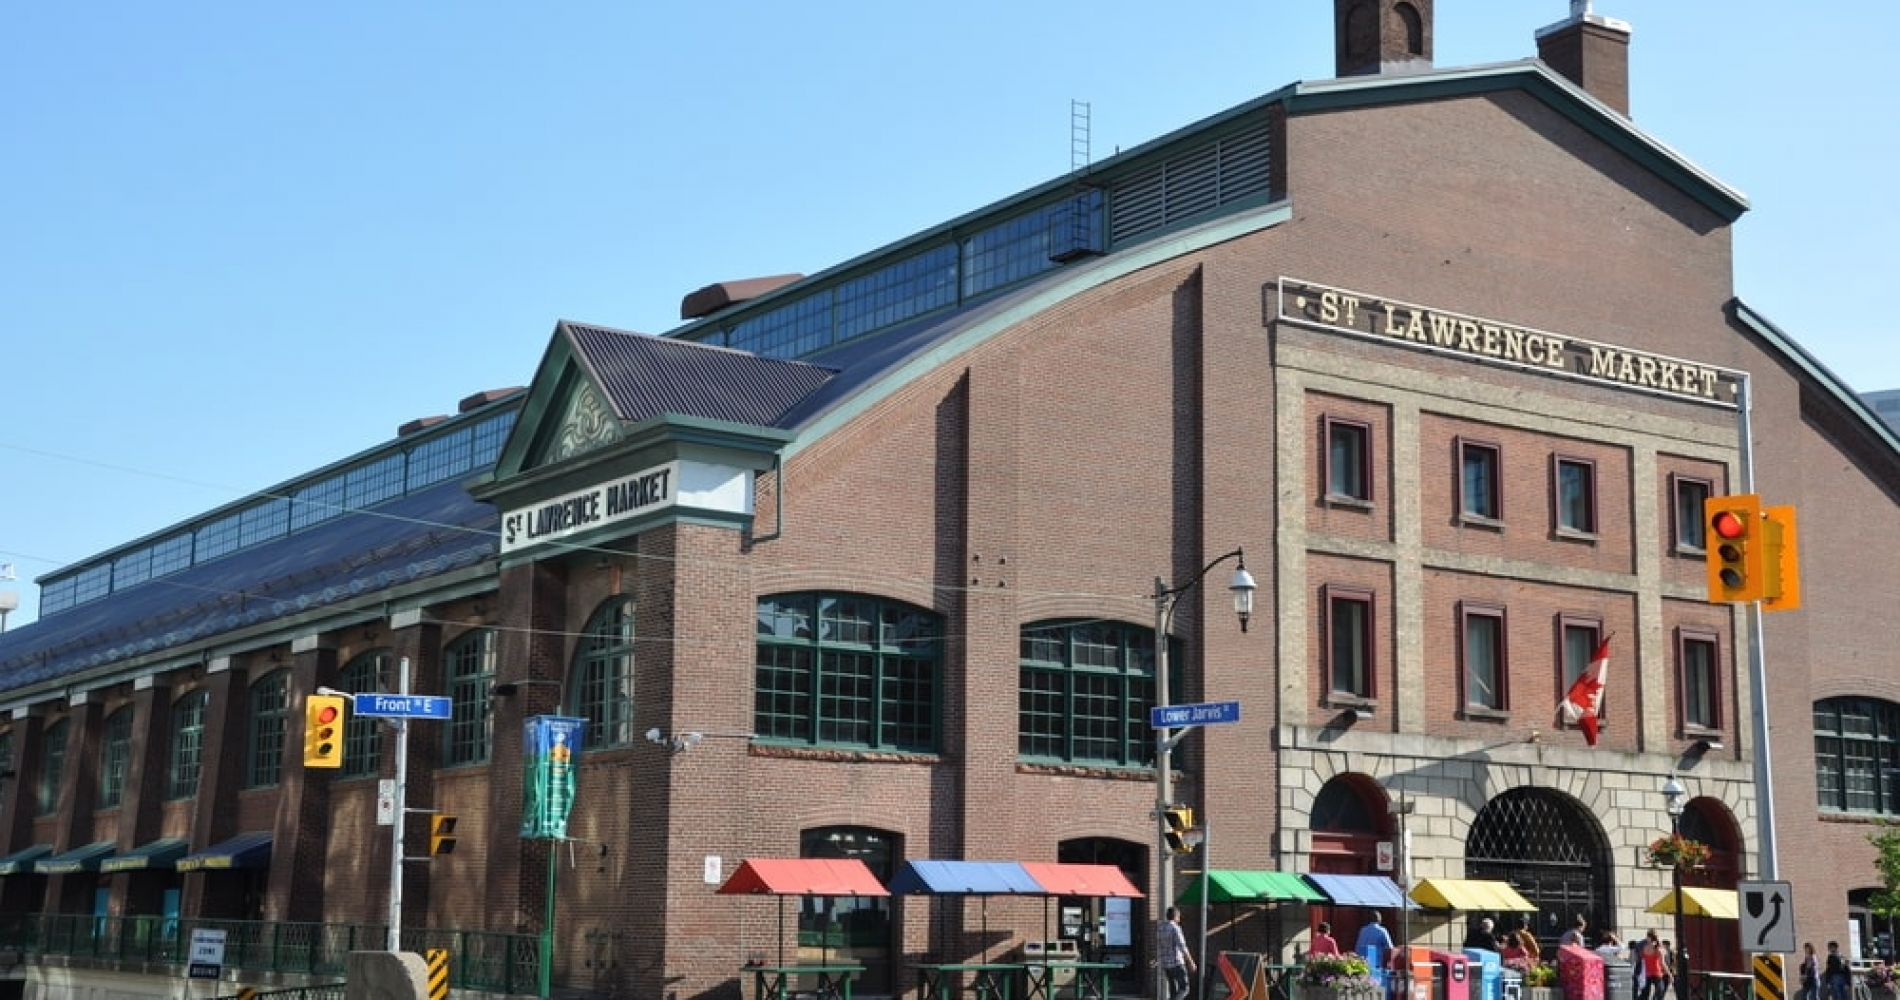 Visit St. Lawrence Market while in Toronto